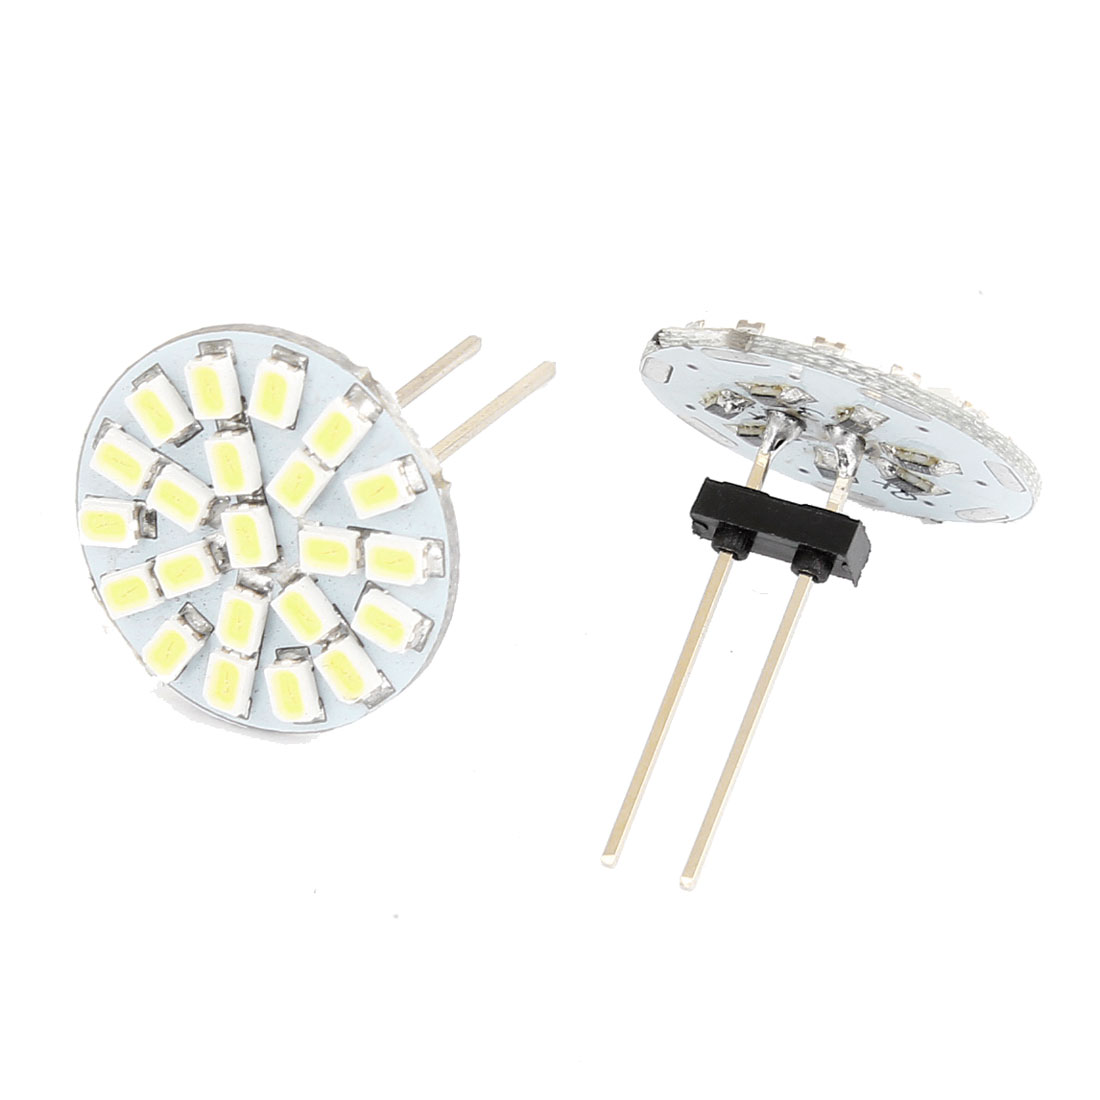 Car White G4 1206 SMD 22 LED Spotlight Lamp Bulb DC 12V 2 Pcs internal